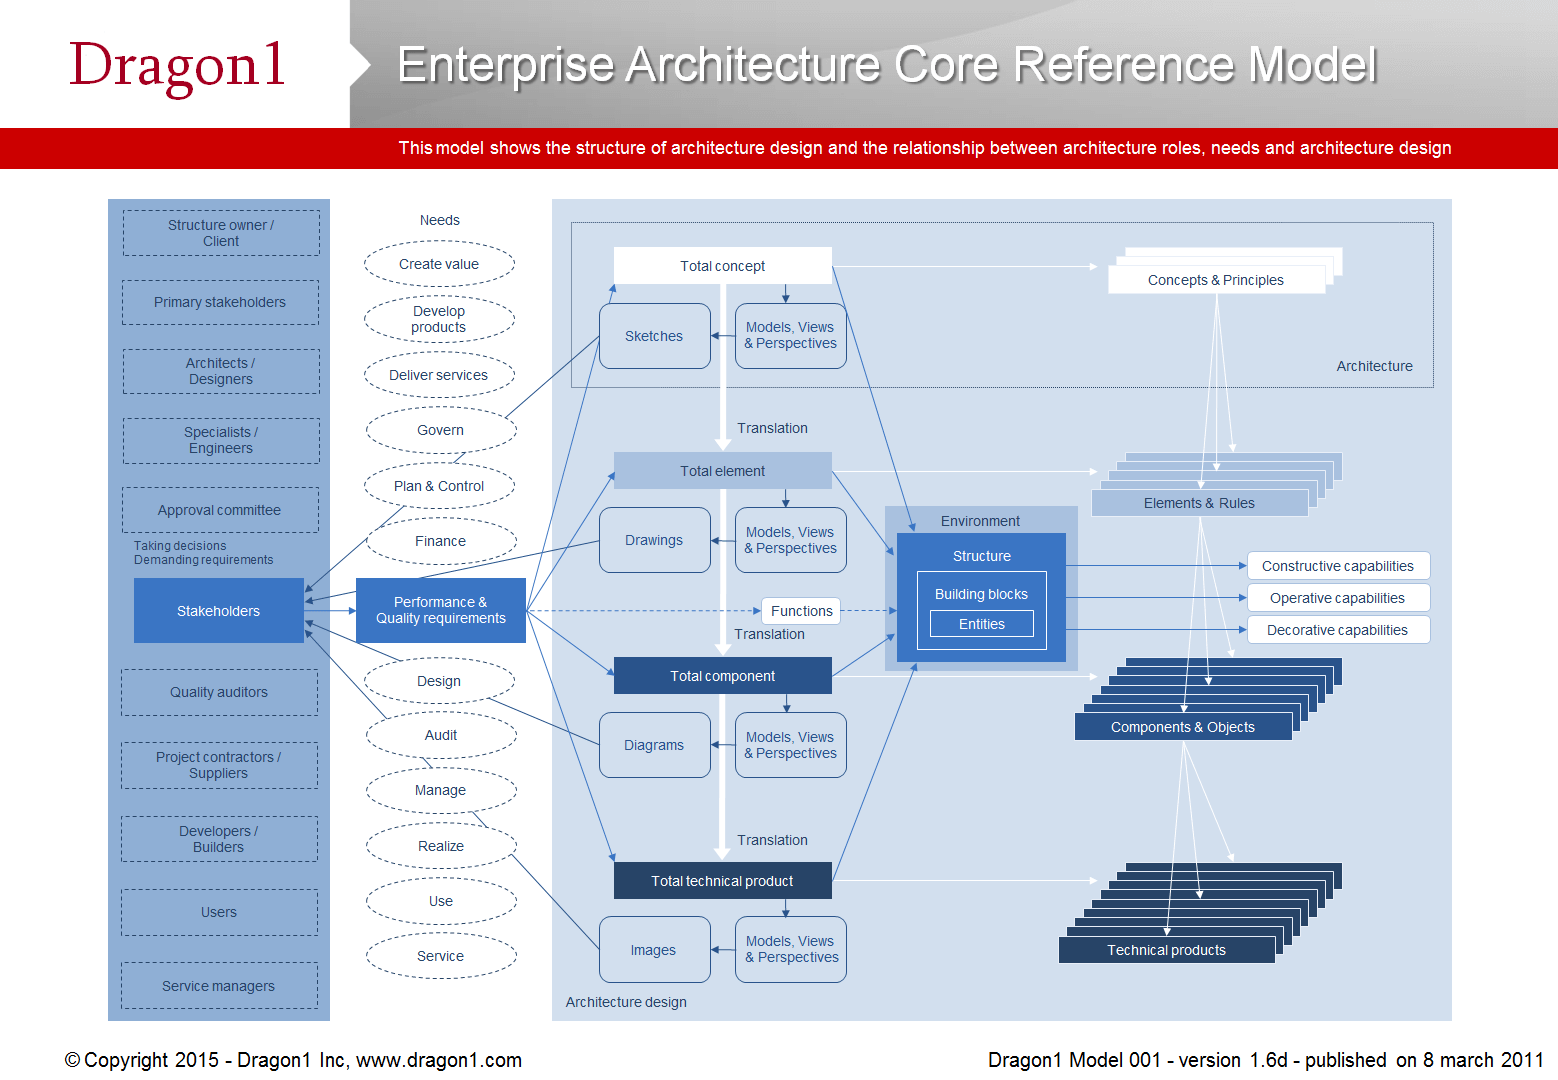 Enterprise Architecture Core Reference Model